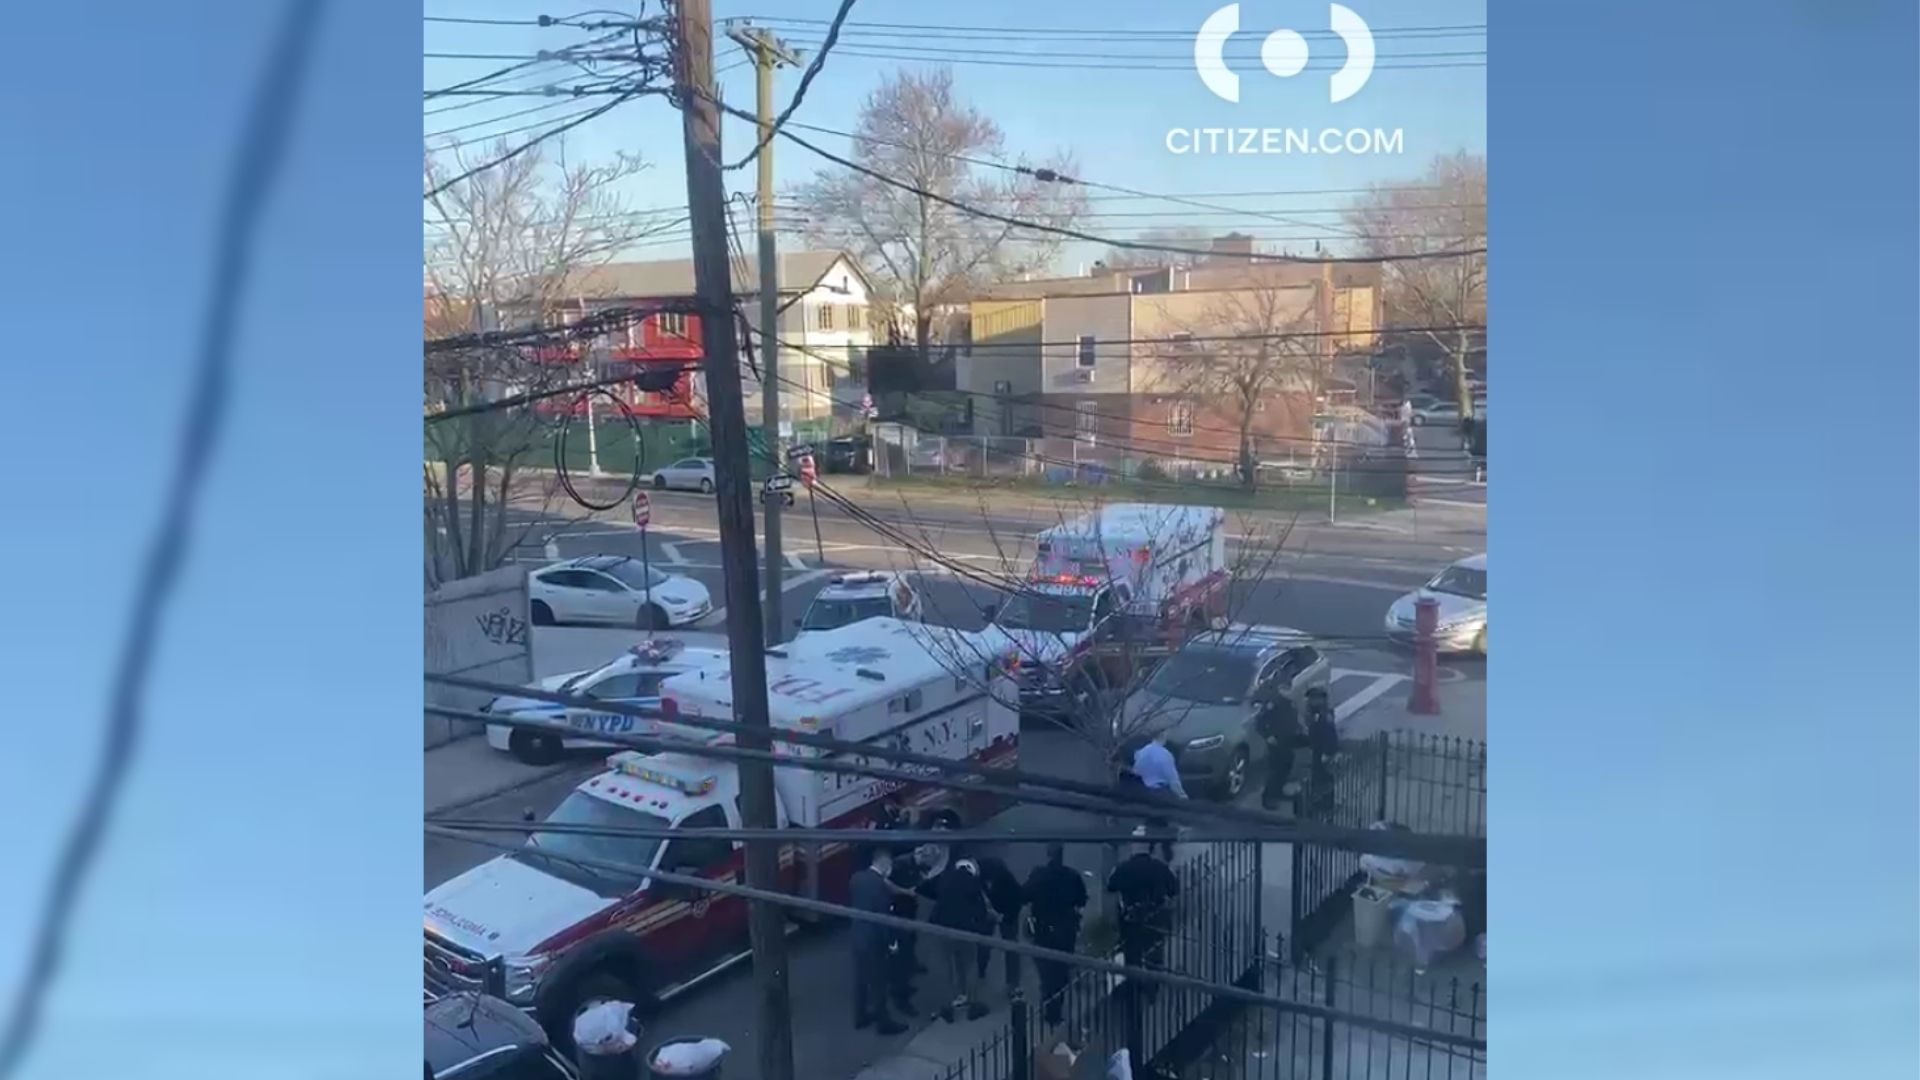 Police and ambulances on the scene after a 5-year-old girl was grazed in the head by a stray bullet near New Lots Avenue and Montauk Avenue in East New York, Brooklyn on Monday, April 5, 2021, according to police. (Citizen App)